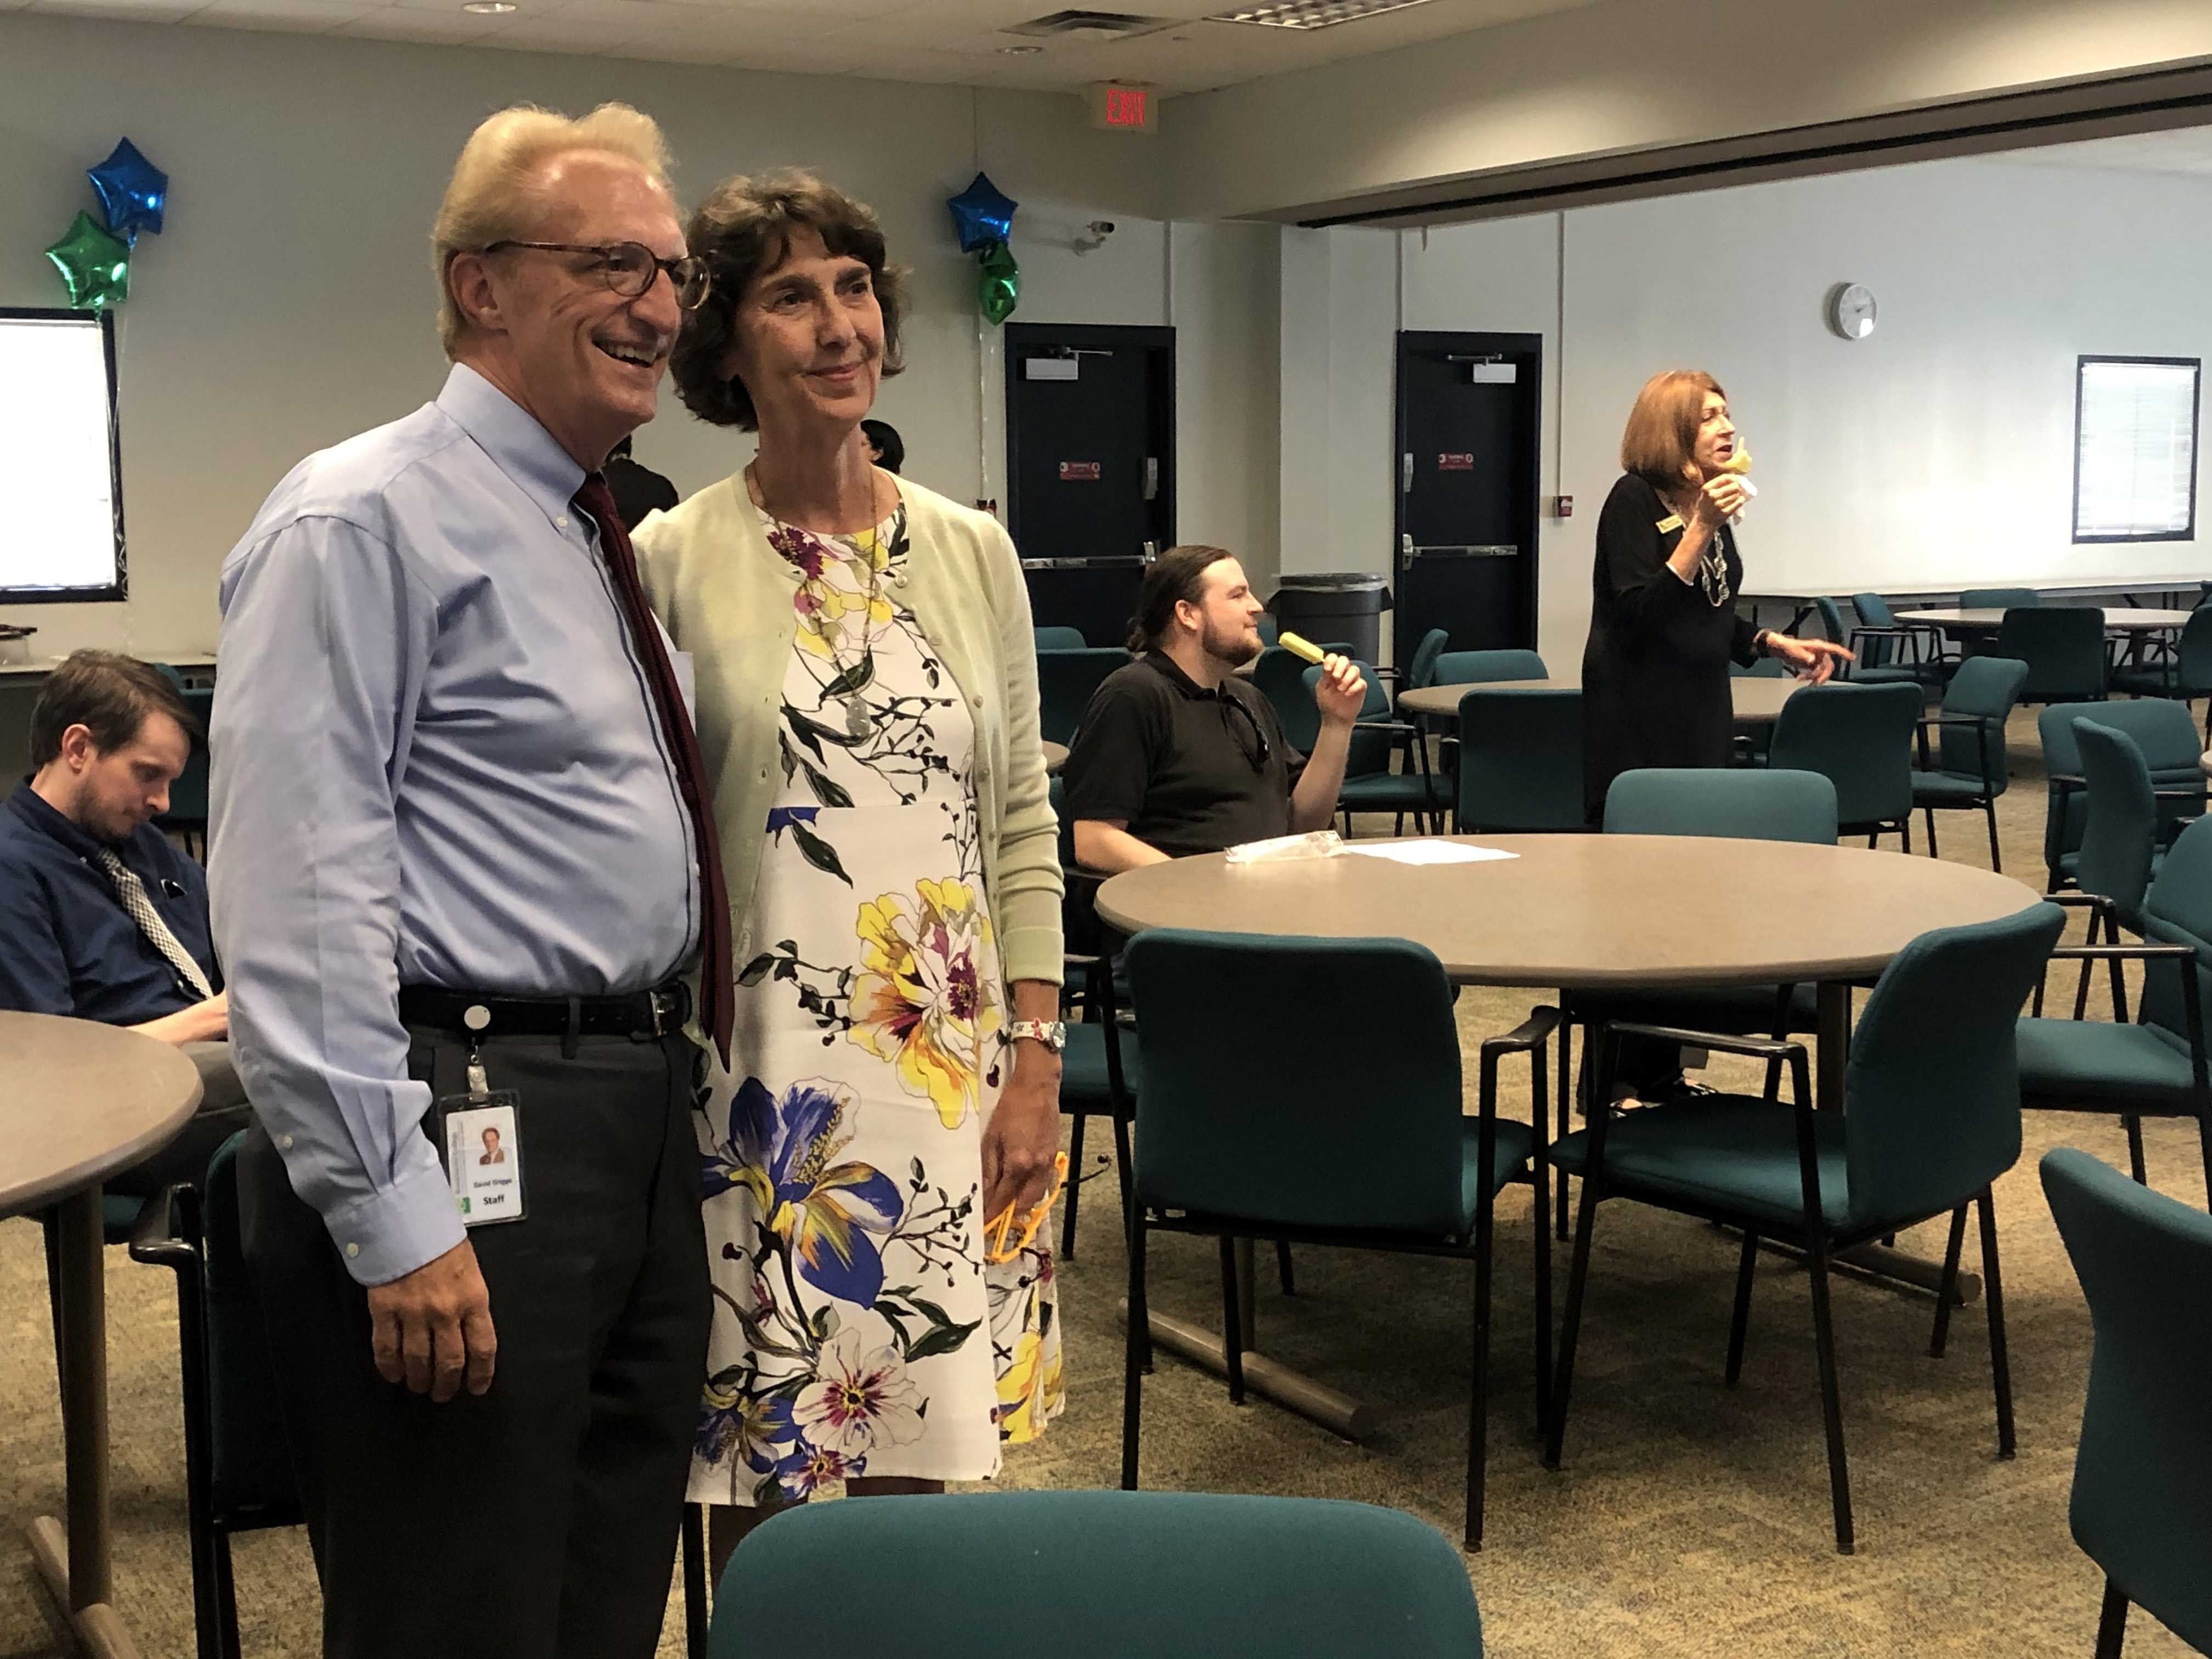 Photo by Jacob Vaughn | David Griggs (left), adjunct professor of criminology, and Carrie Schweitzer, director of sustainability, pose for a photo at her retirement party Aug. 28.